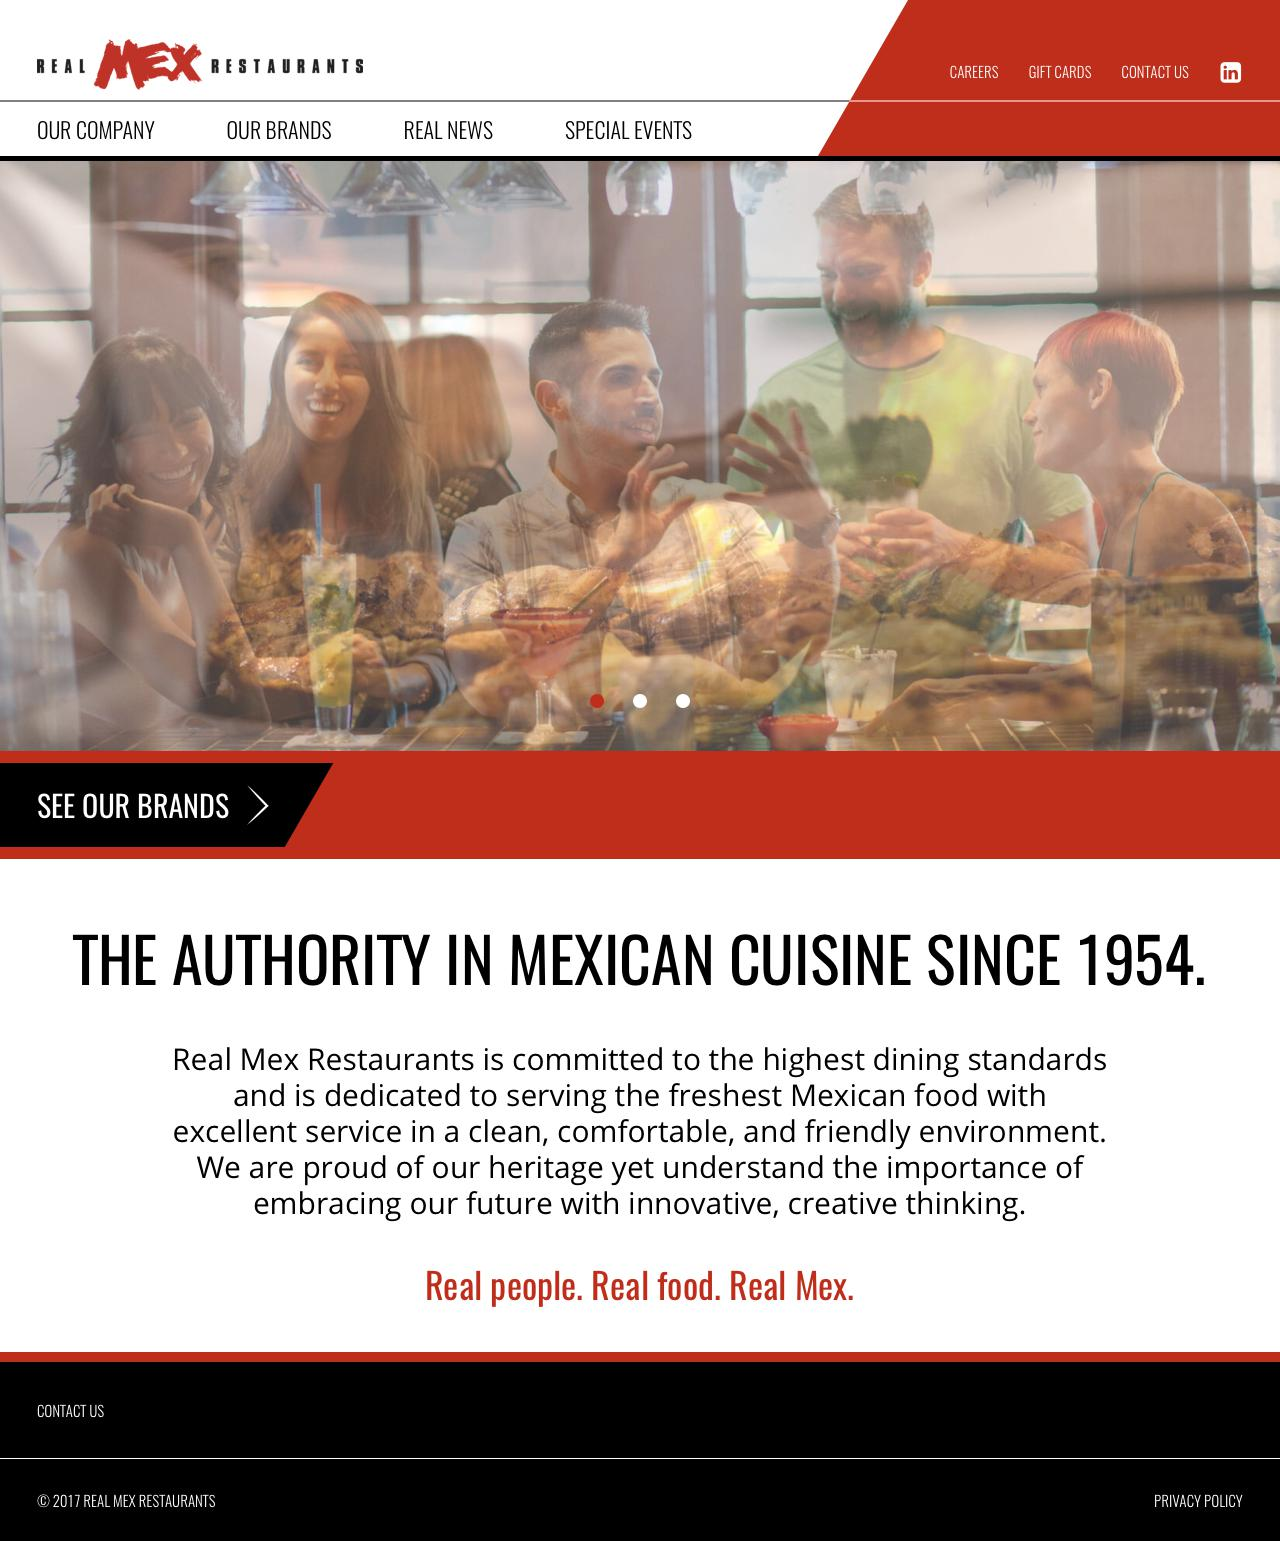 Screenshot of realmexrestaurants.com - Real Mex Restaurants | The Authority in Mexican Cuisine Since 1954 - captured June 18, 2017